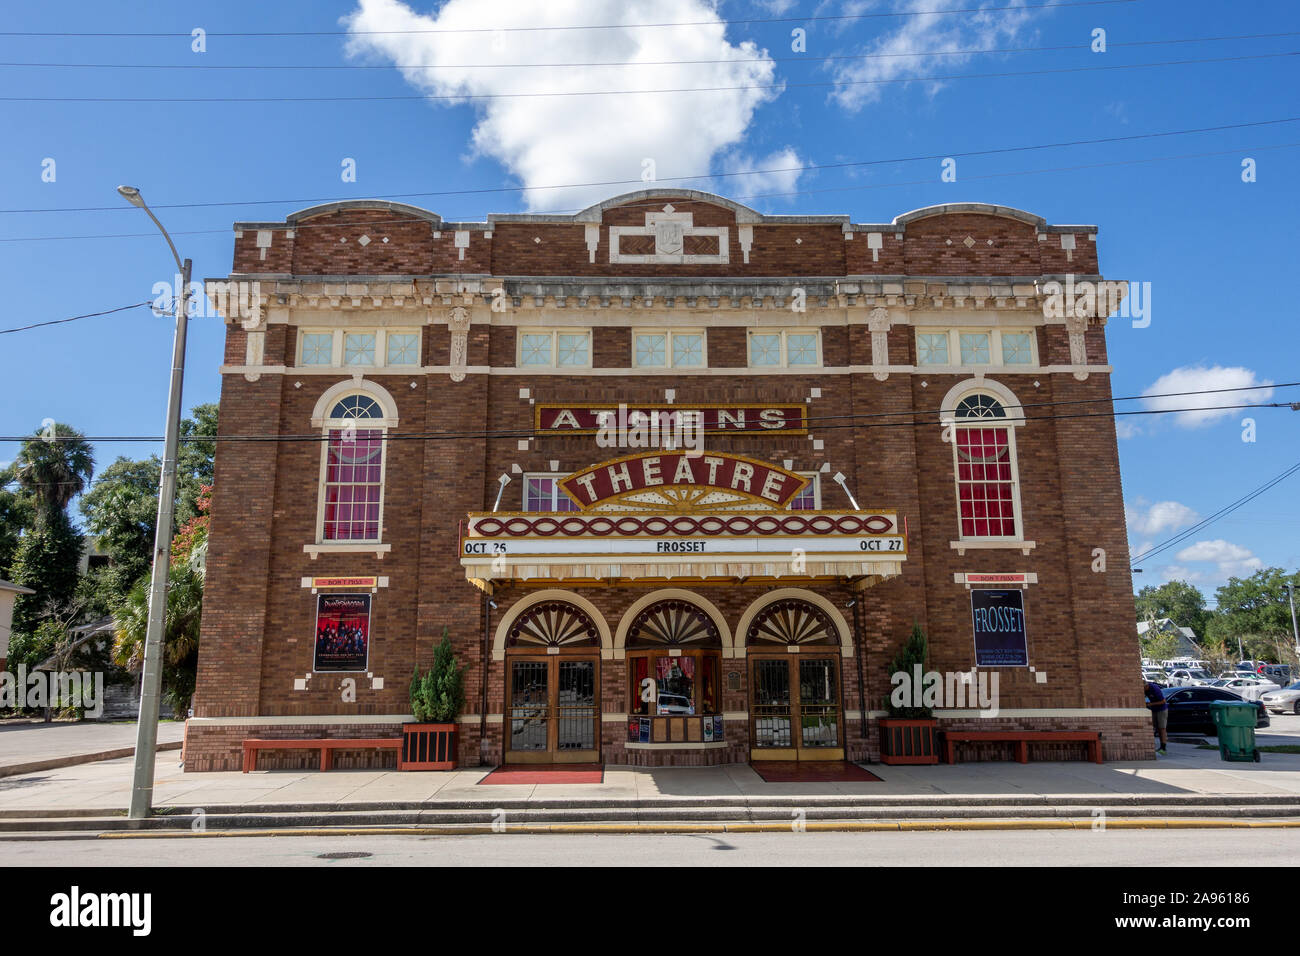 the-historic-athens-theatre-building-dating-from-1921the-architecture-style-is-italian-renaissance-in-the-historic-downtown-of-deland-florida-usa-2A96186.jpg